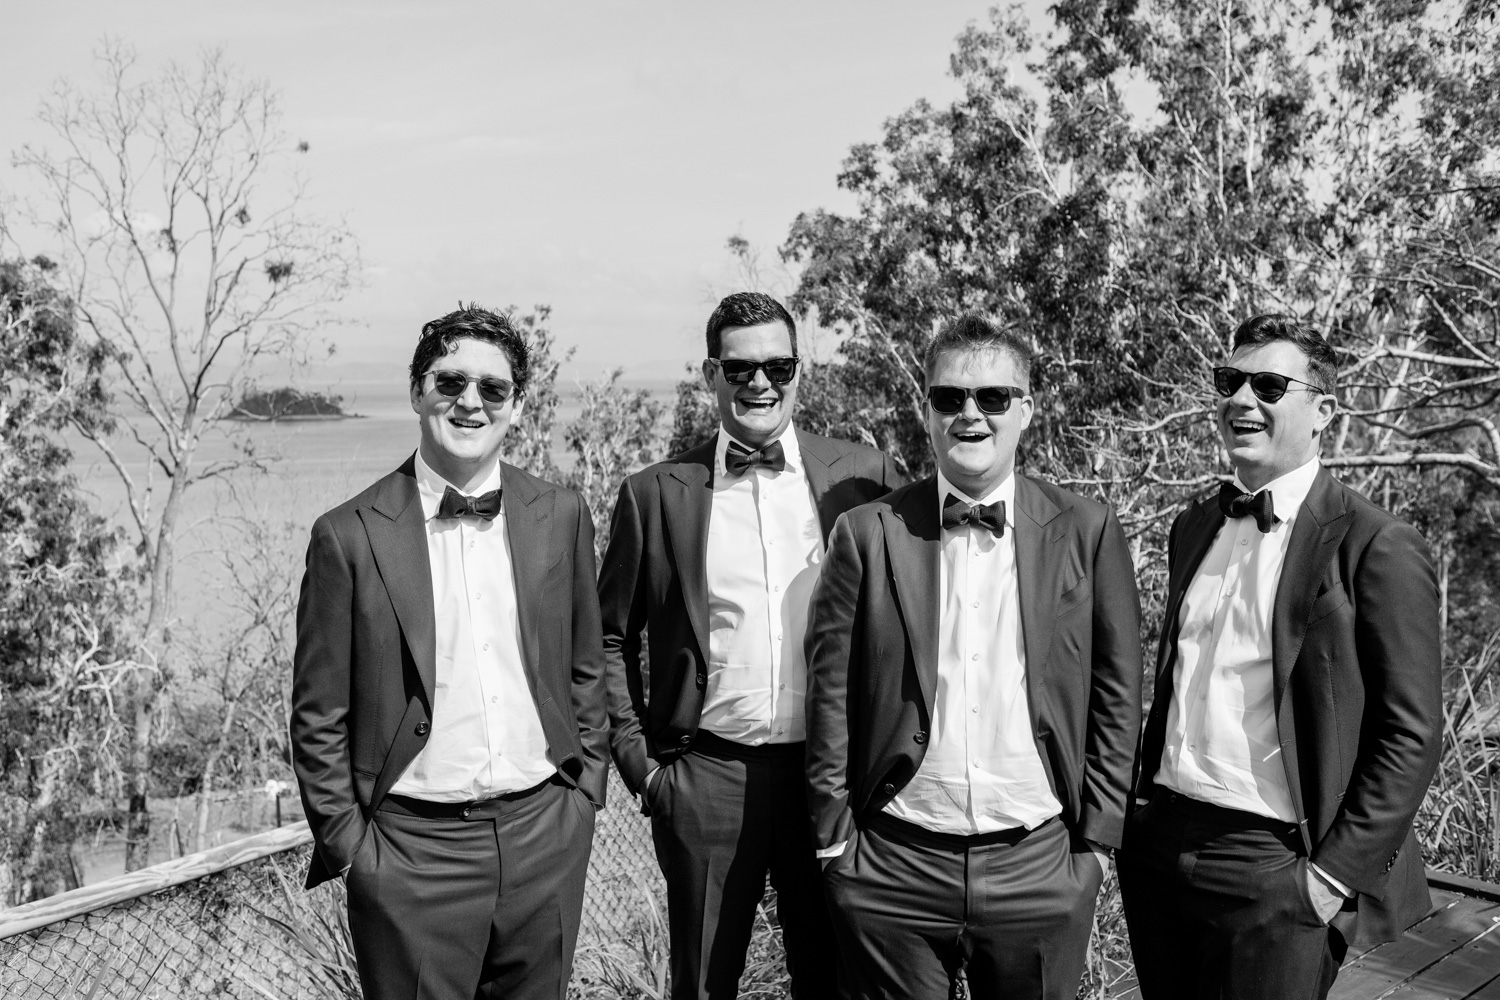 wedding-0100-suits-bowties-groom-groomsmen-swagger-brisbane.jpg